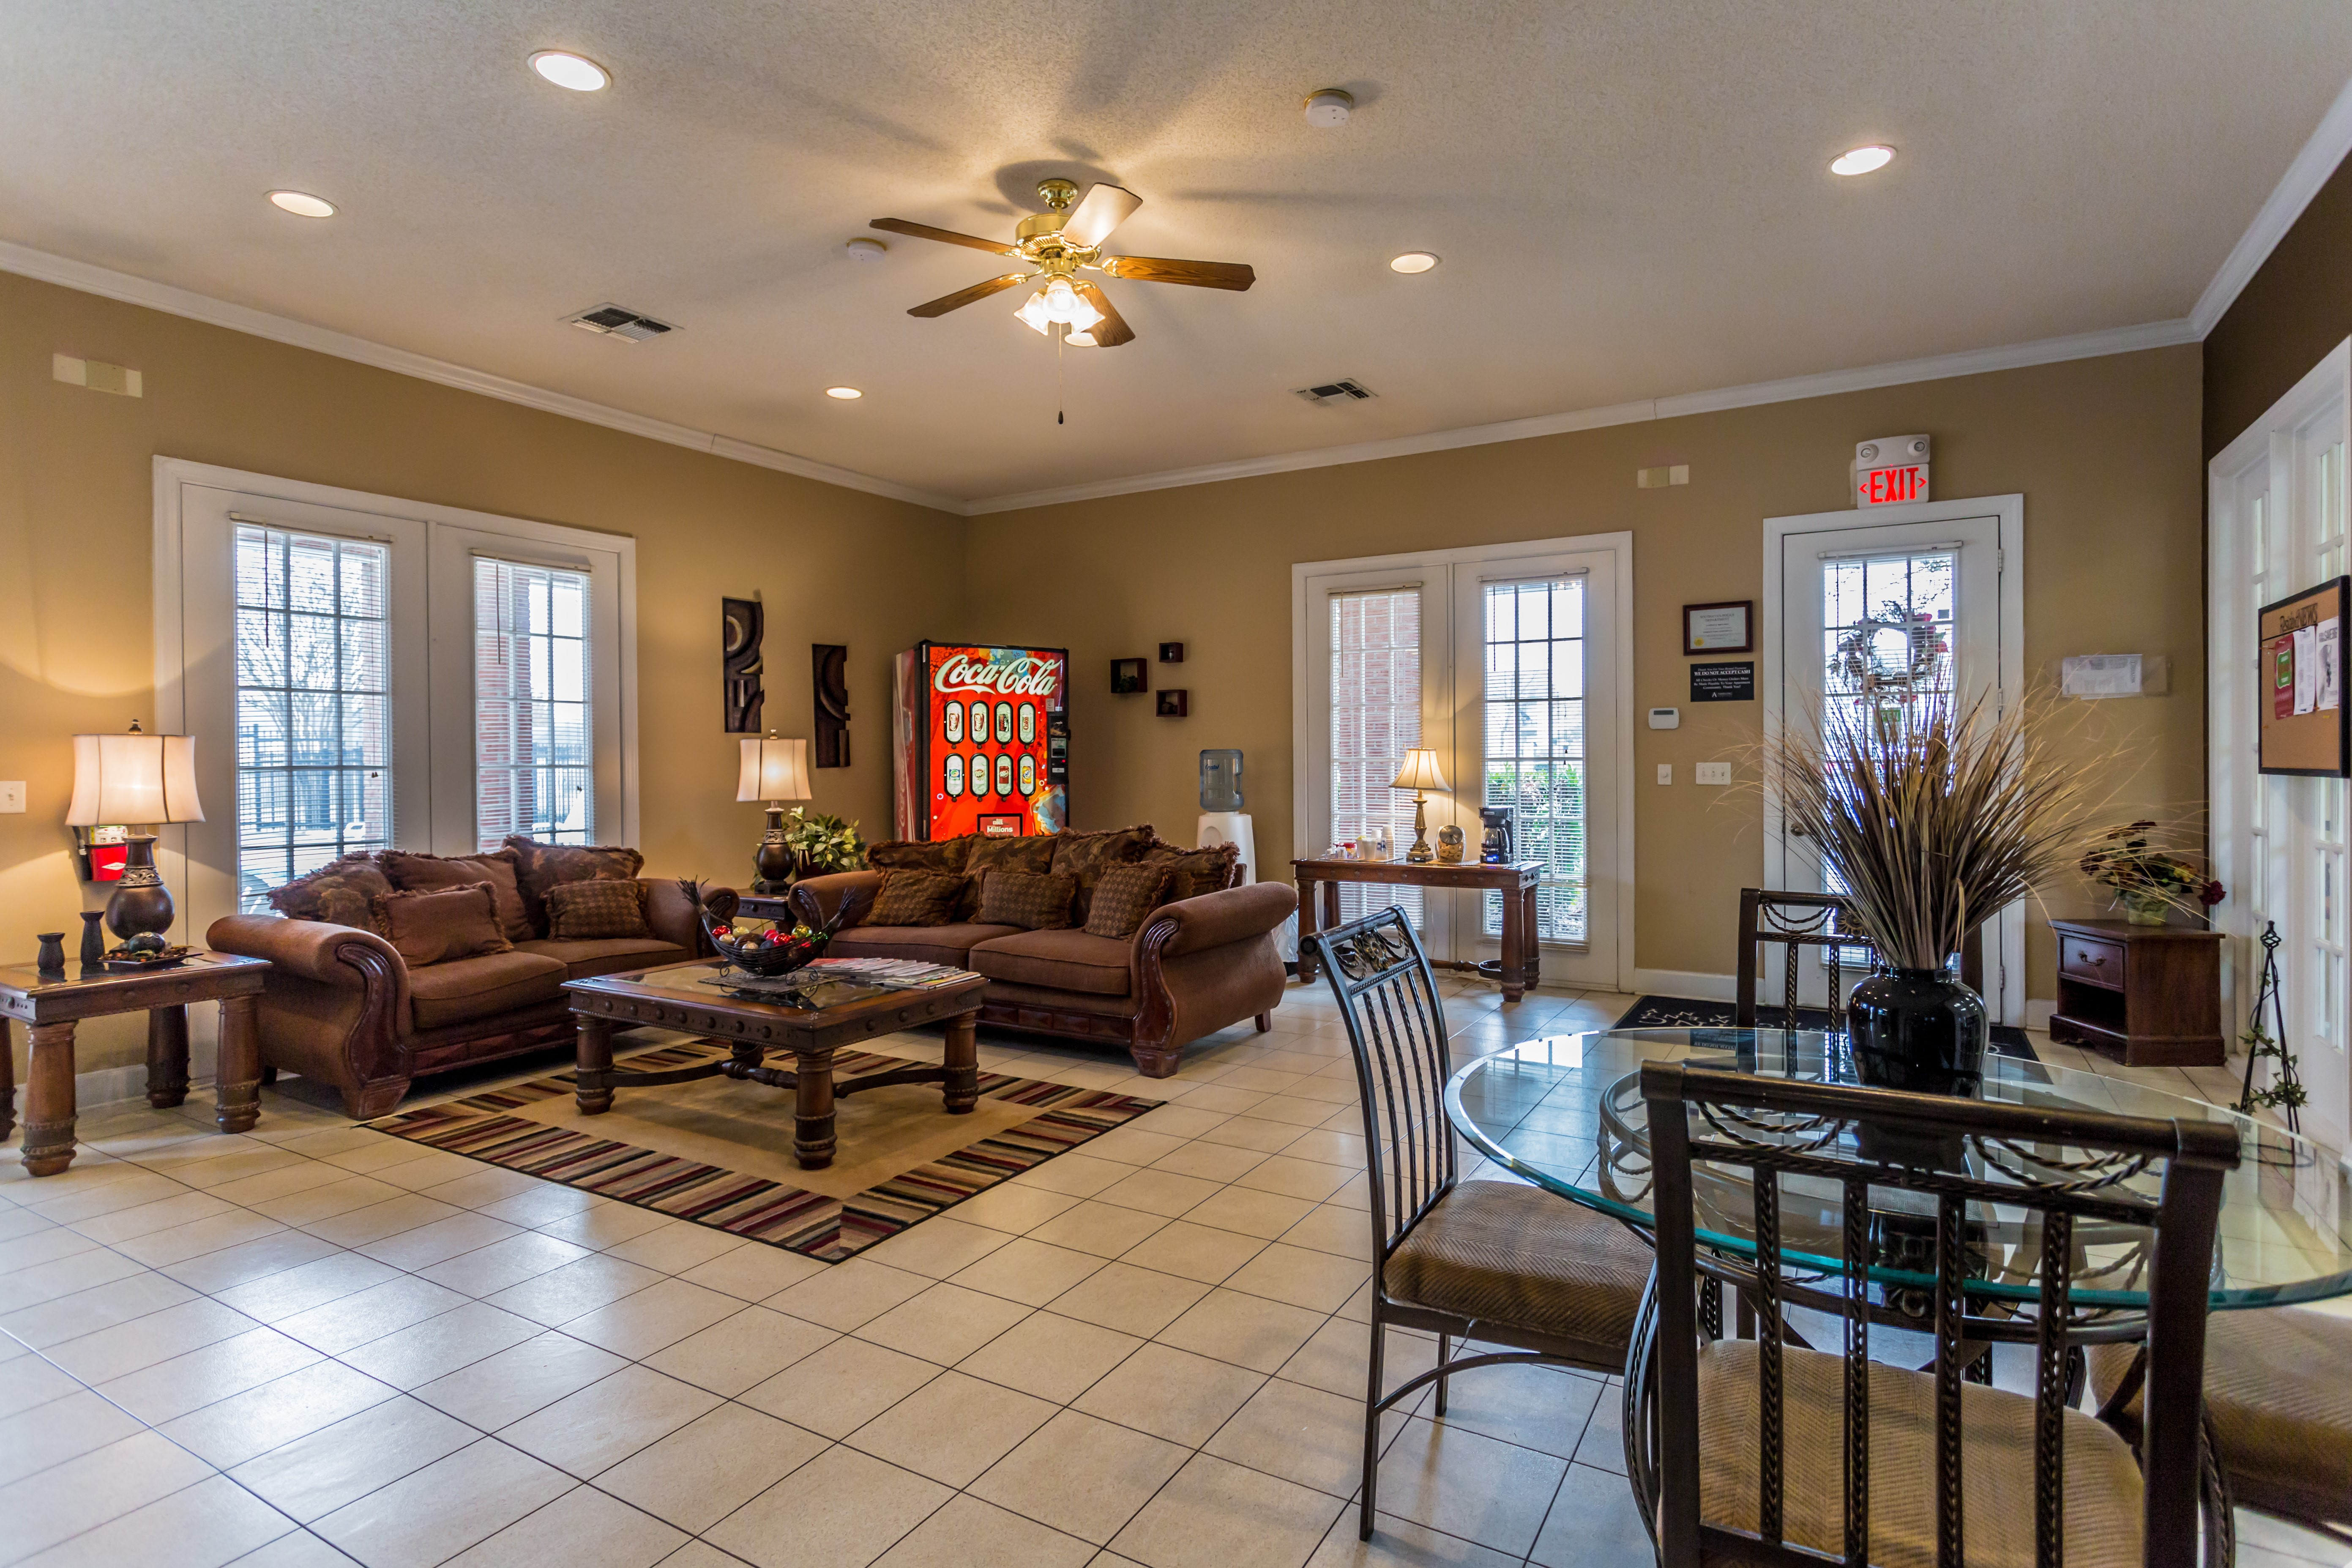 Apartments Near CBU Terraces at Southaven for Christian Brothers University Students in Memphis, TN